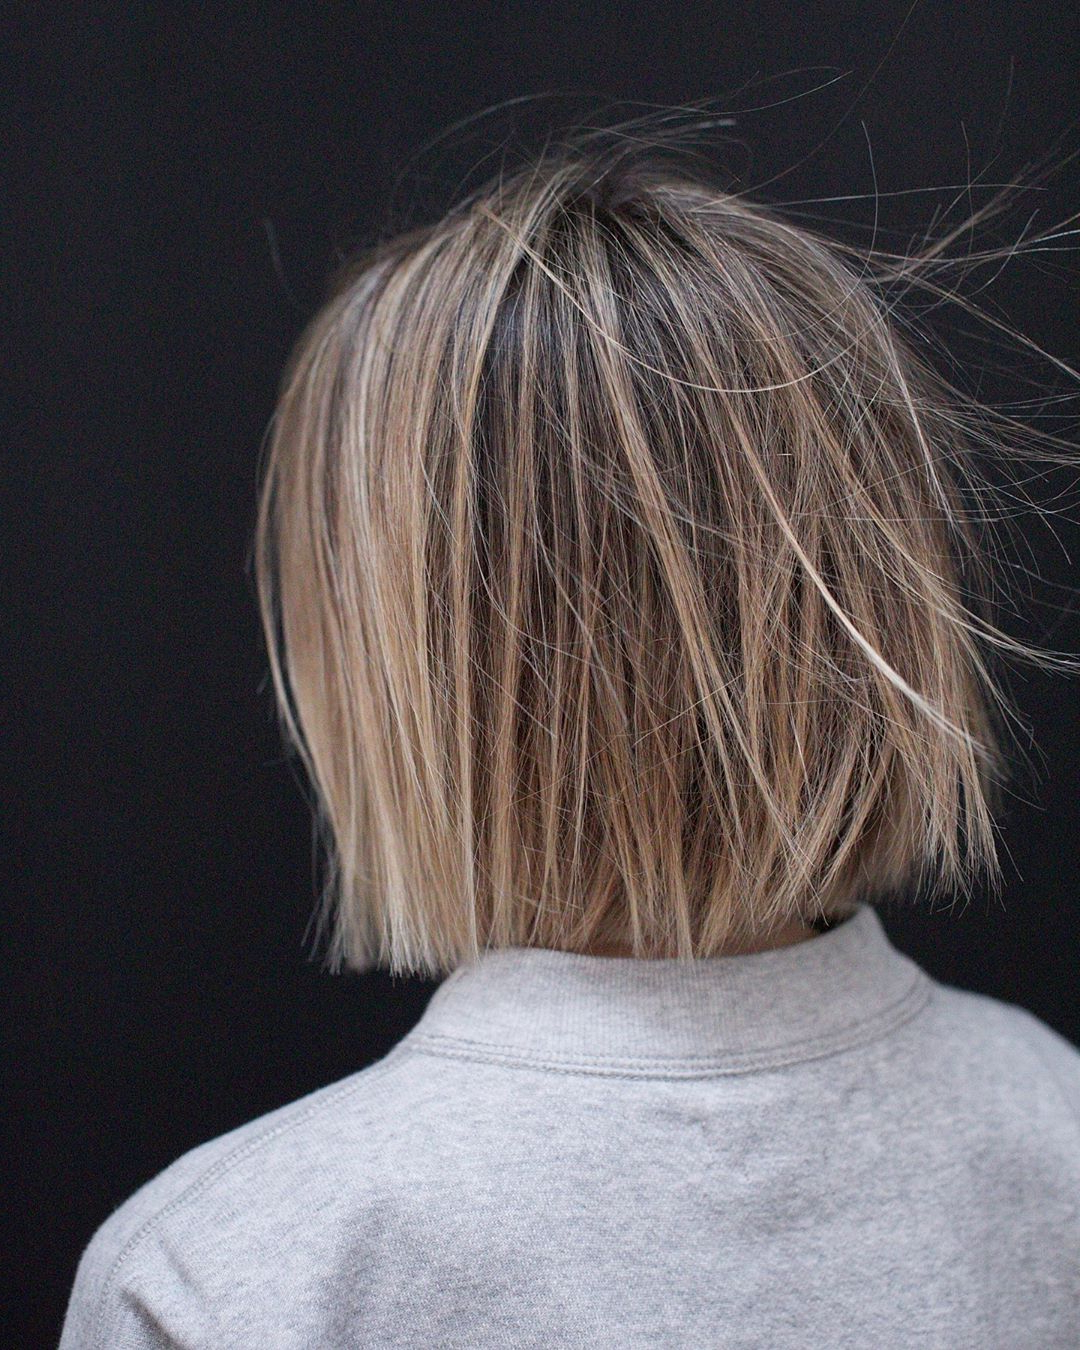 Widely Used Textured Classic Bob Hairstyles With 10 Casual Medium Bob Hair Cuts – Female Bob Hairstyles 2020 (Gallery 6 of 20)